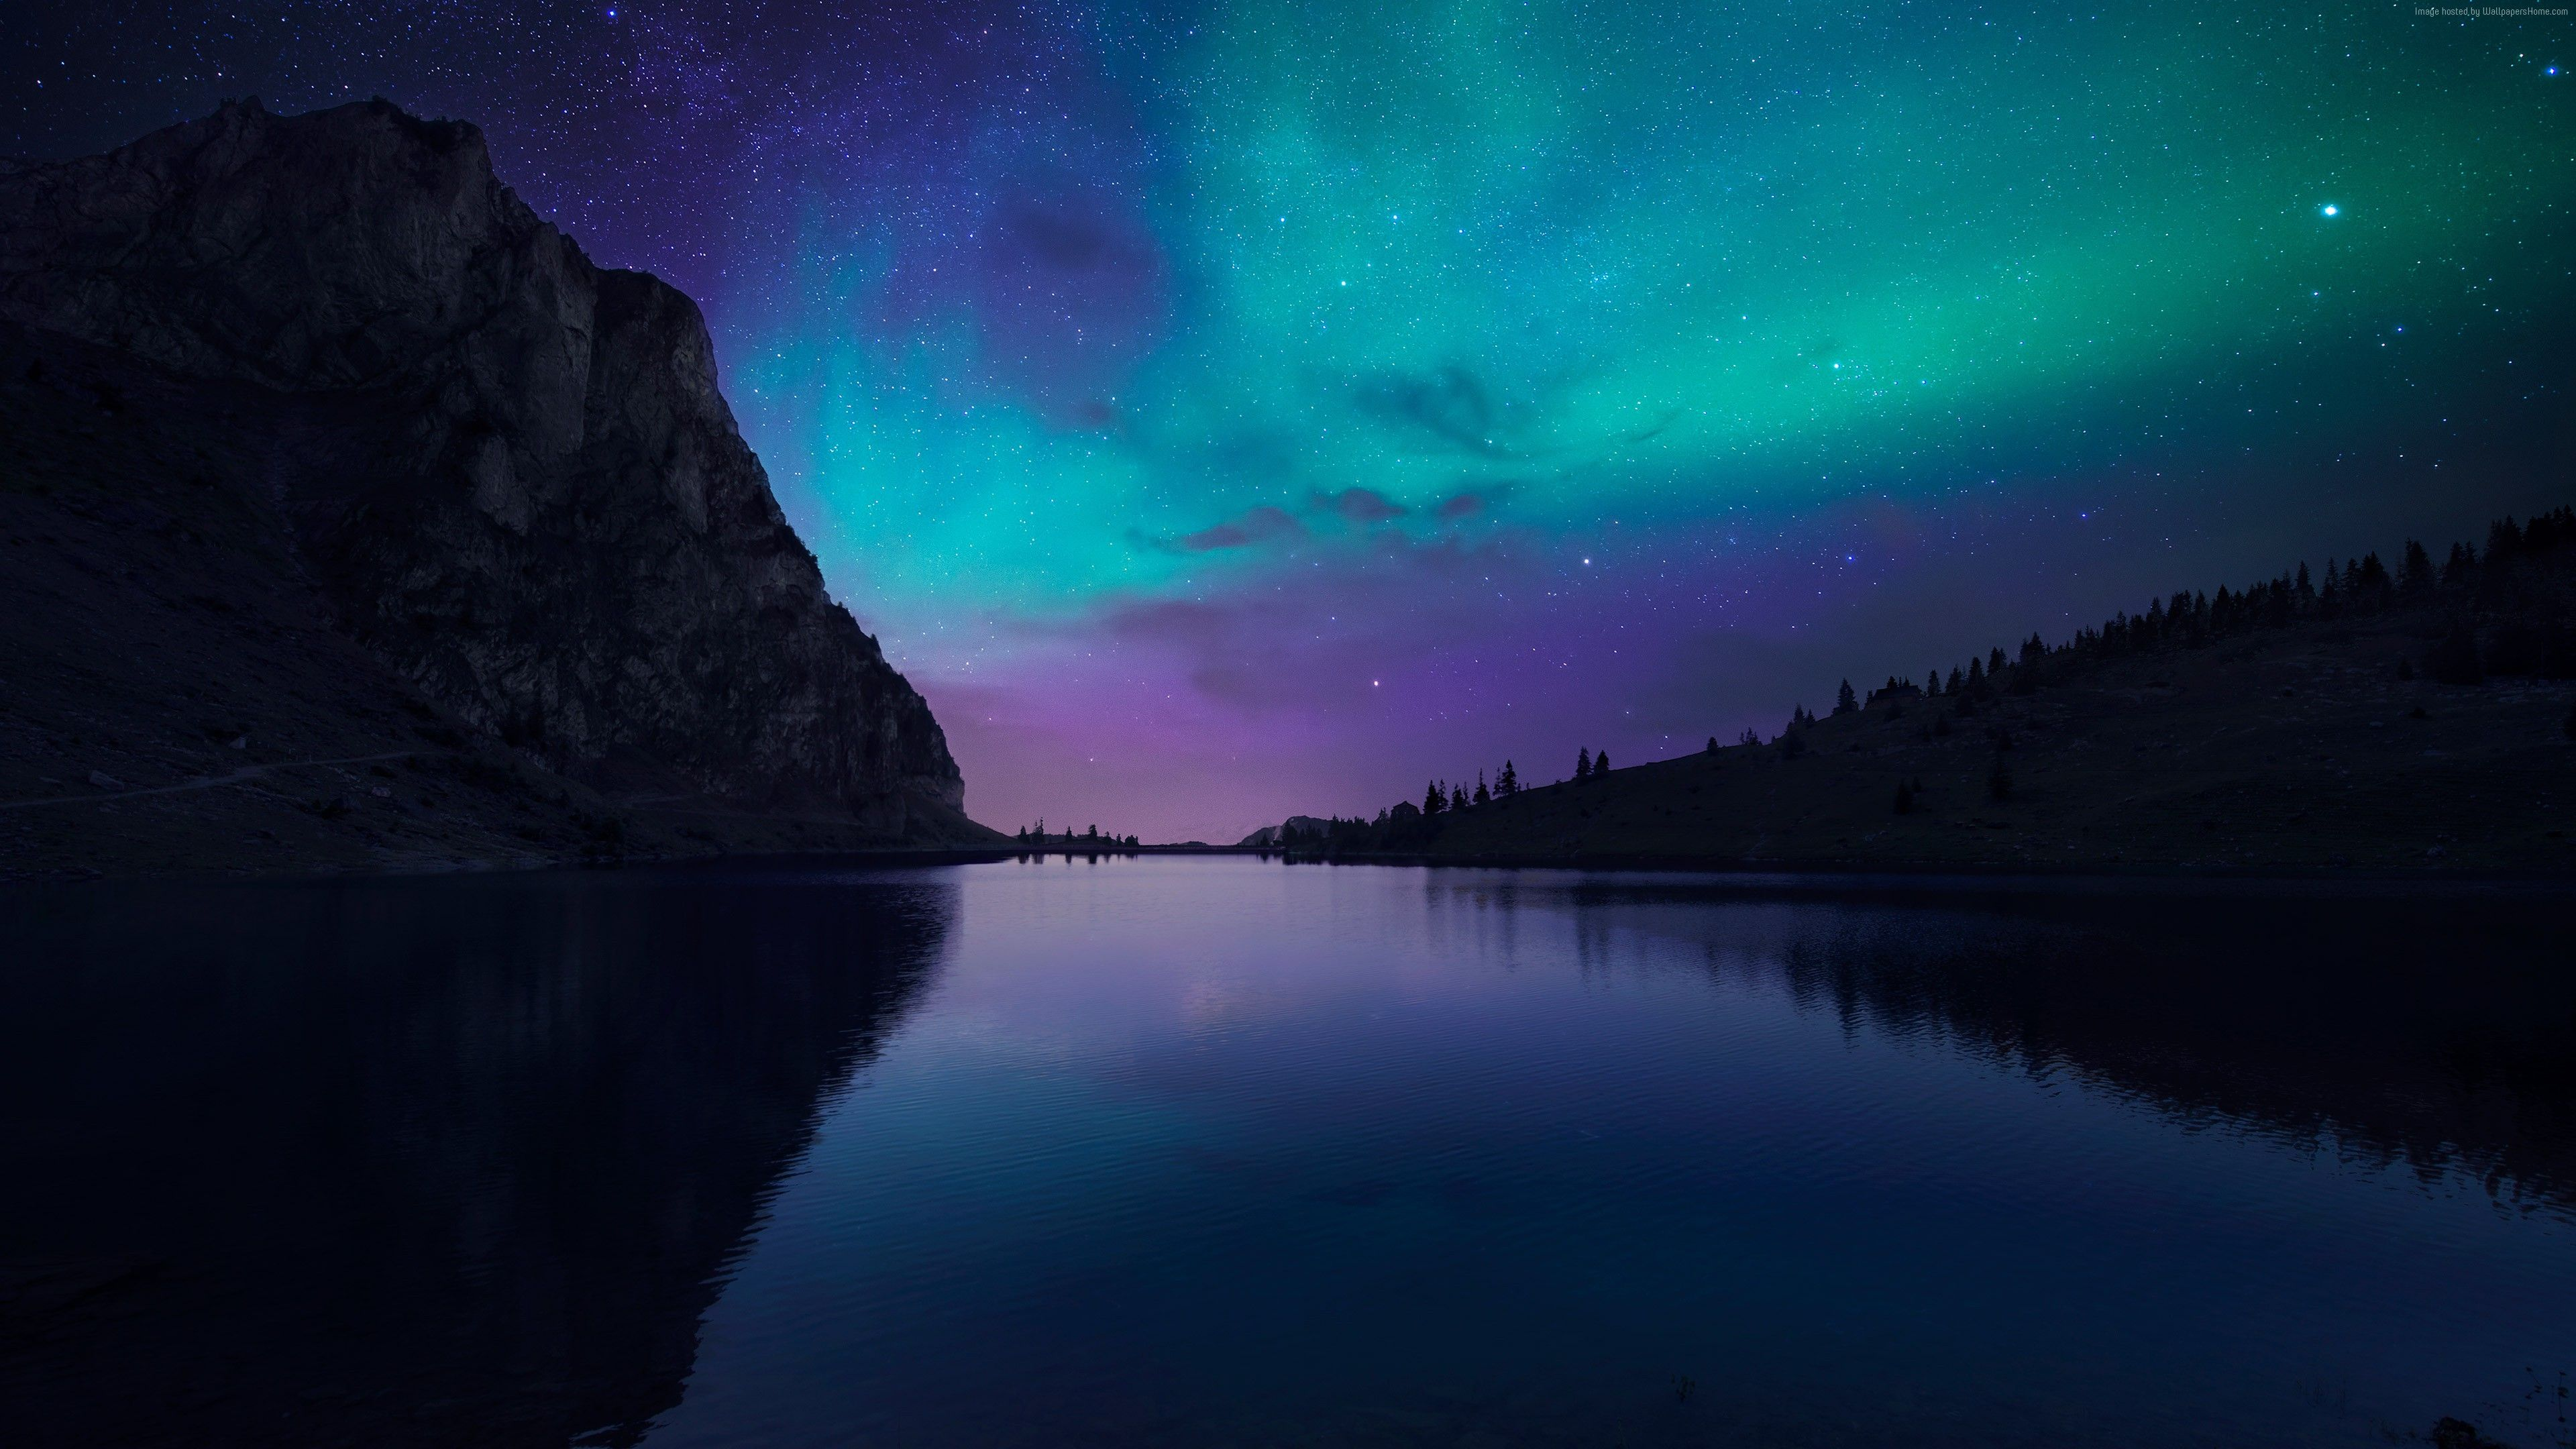 Lake Aurora 4k Wallpaper And Desktop Images With Images